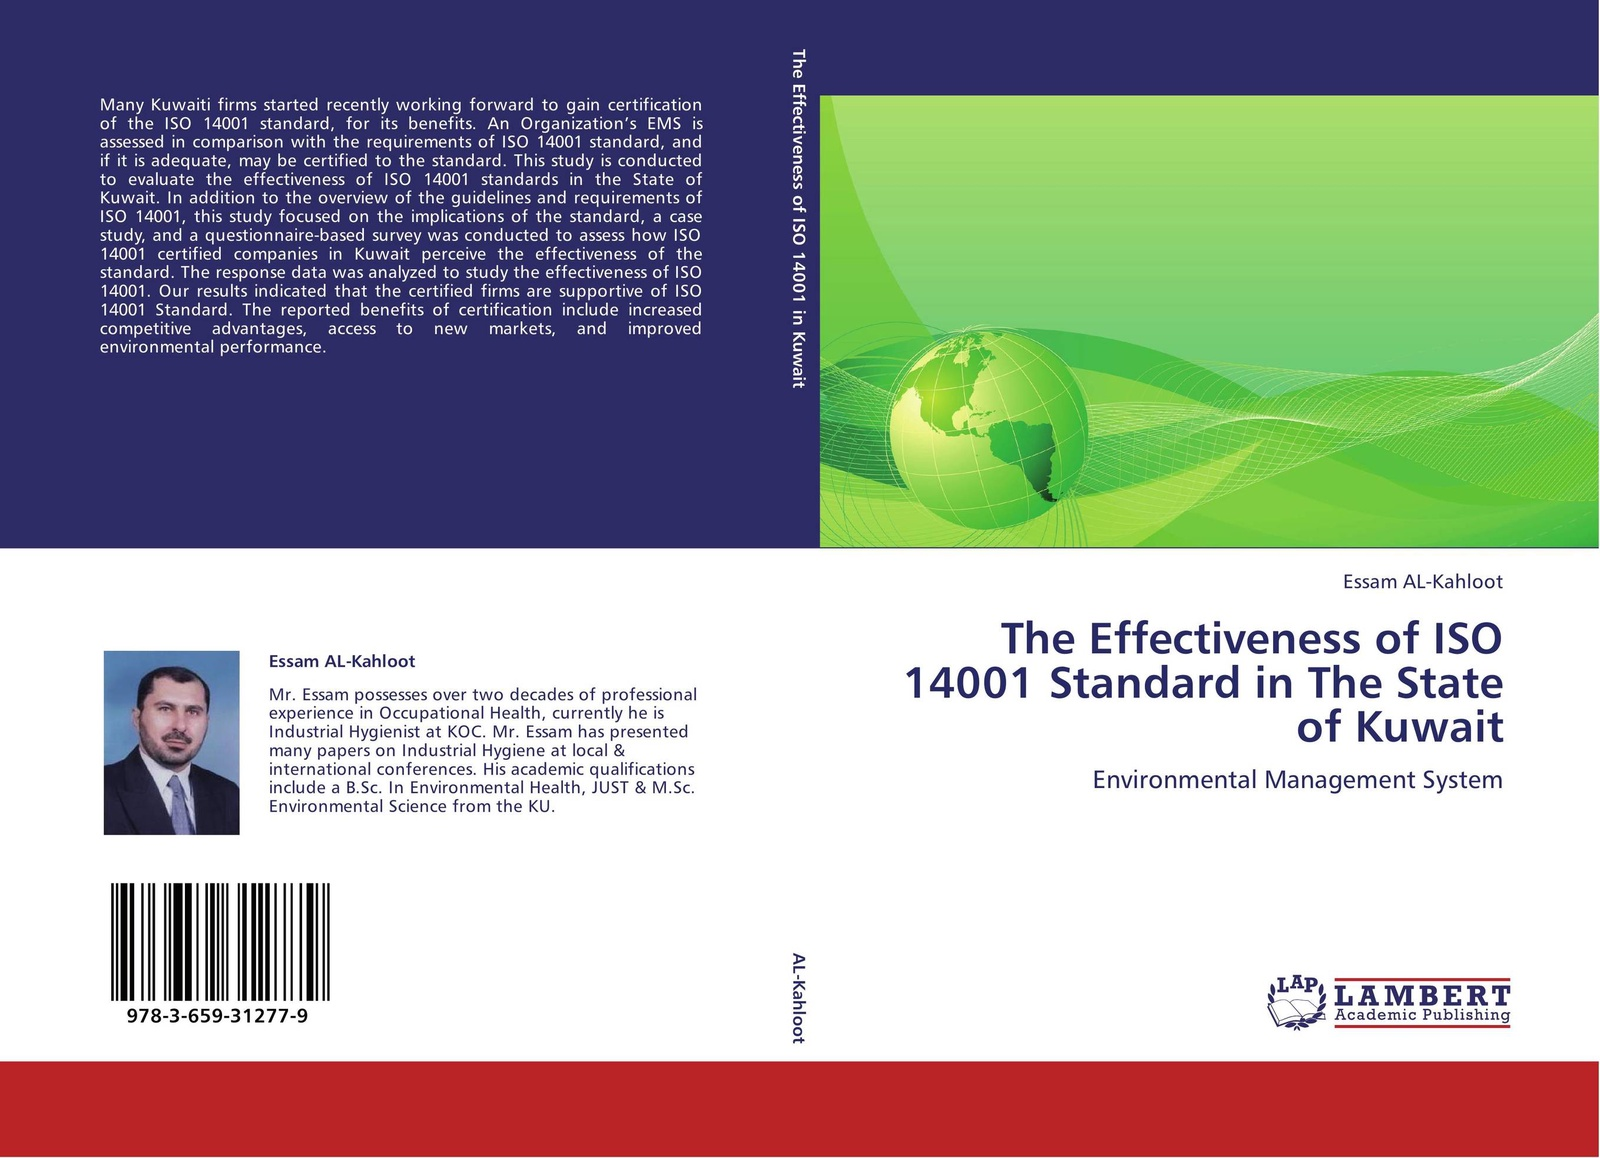 Essam AL-Kahloot The Effectiveness of ISO 14001 Standard in The State of Kuwait 2015版iso 14001环境管理体系内审员培训教程